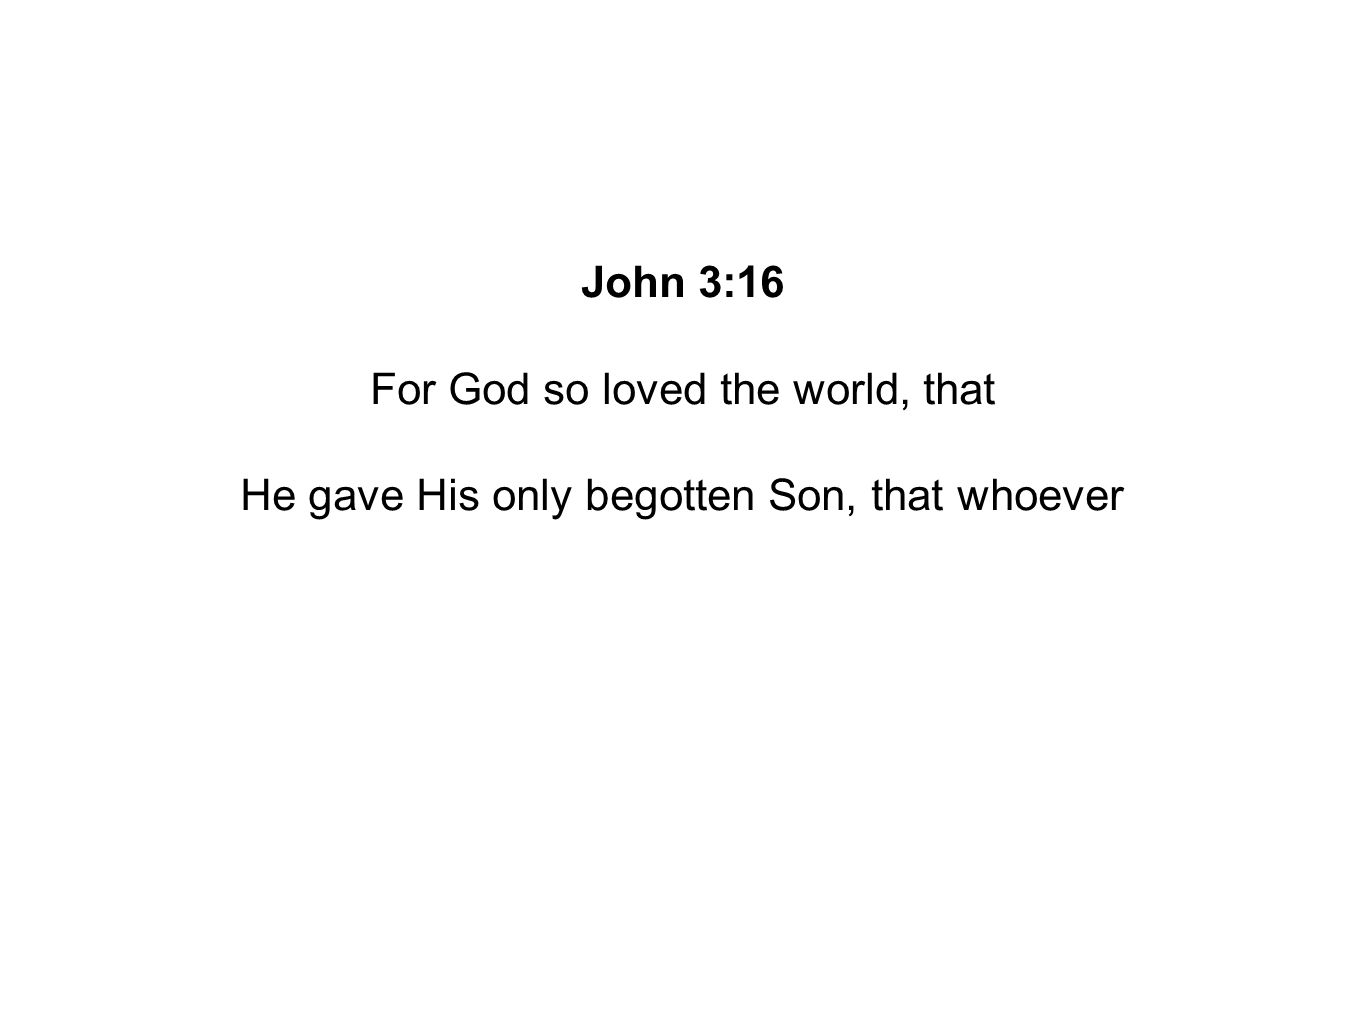 John 3:16 For God so loved the world, that He gave His only begotten Son, that whoever